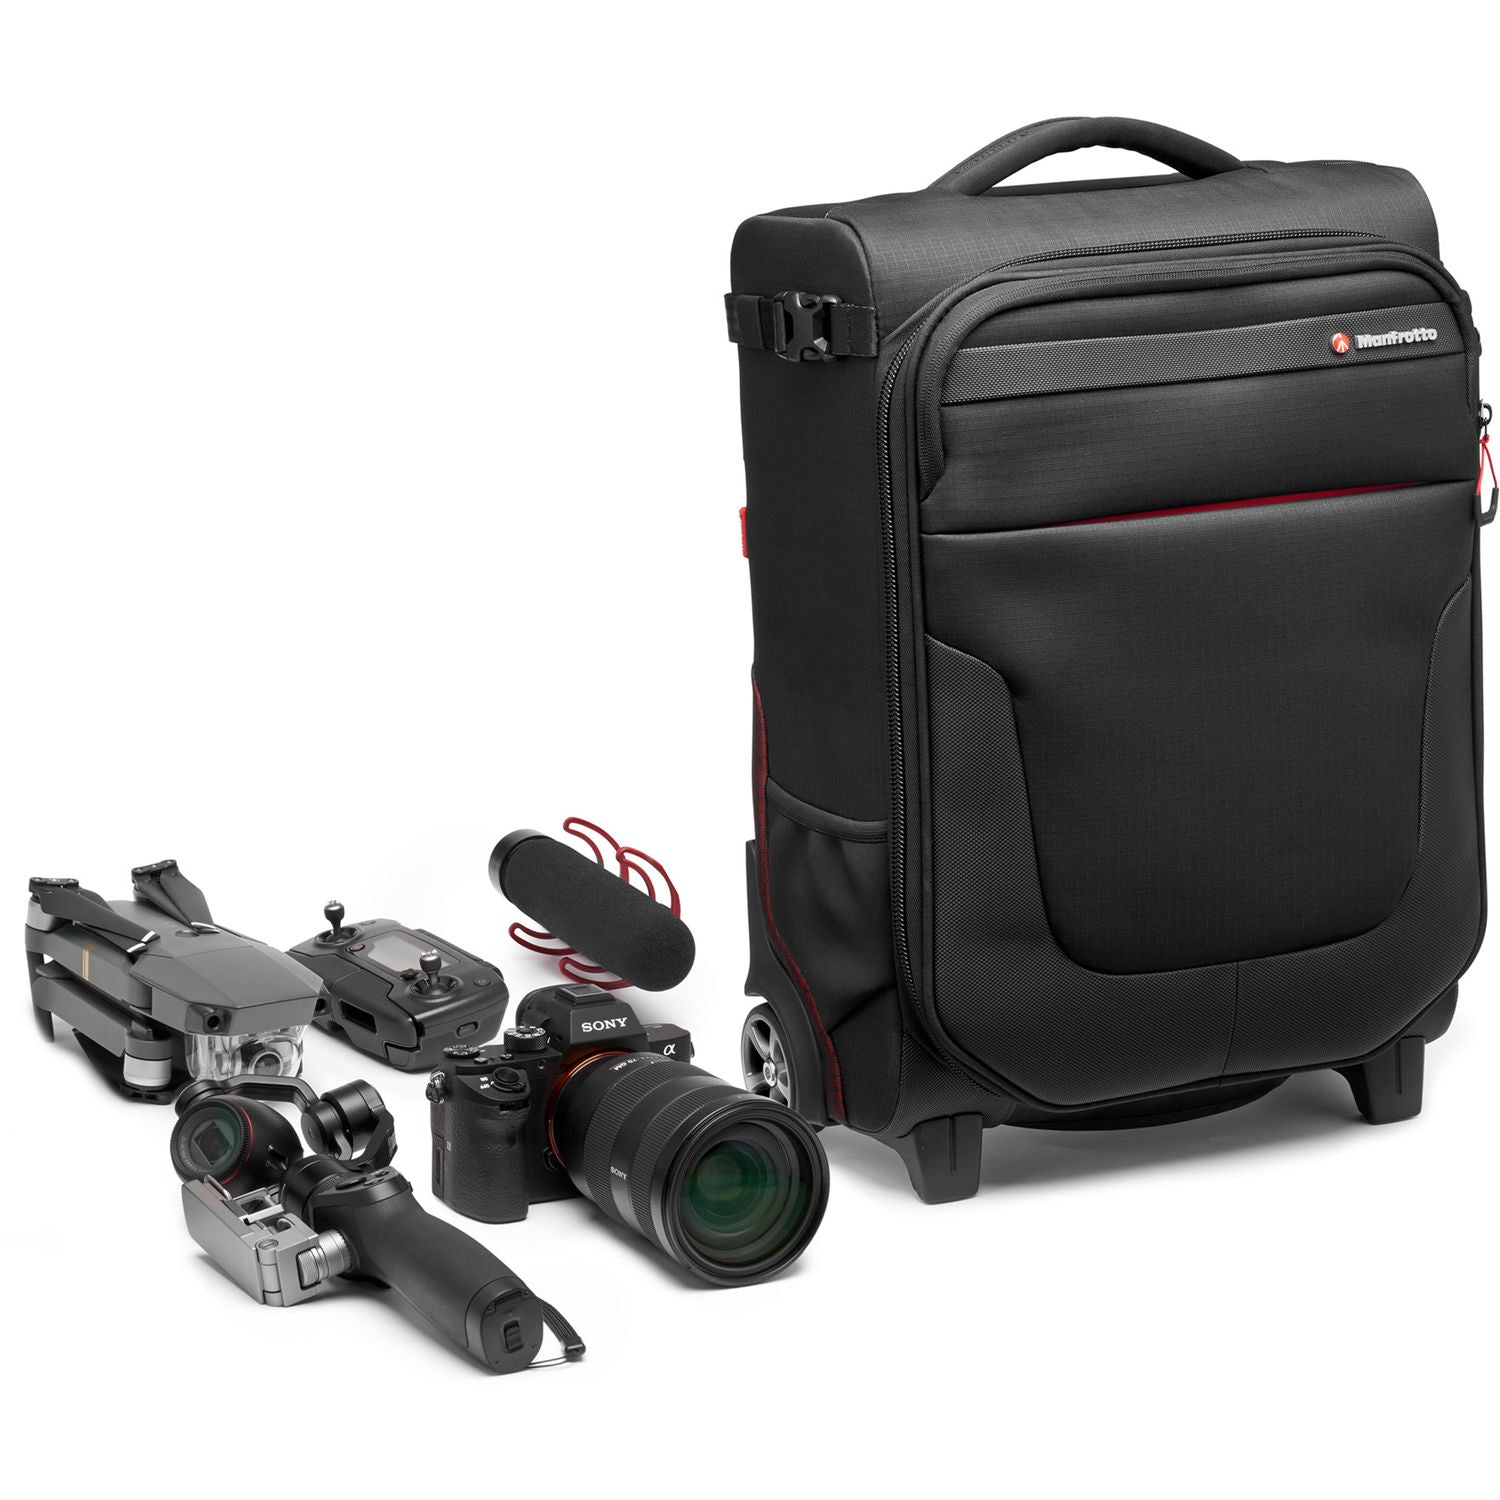 Manfrotto Pro Light Reloader Air-50 Carry-On Camera Roller Bag (Black)